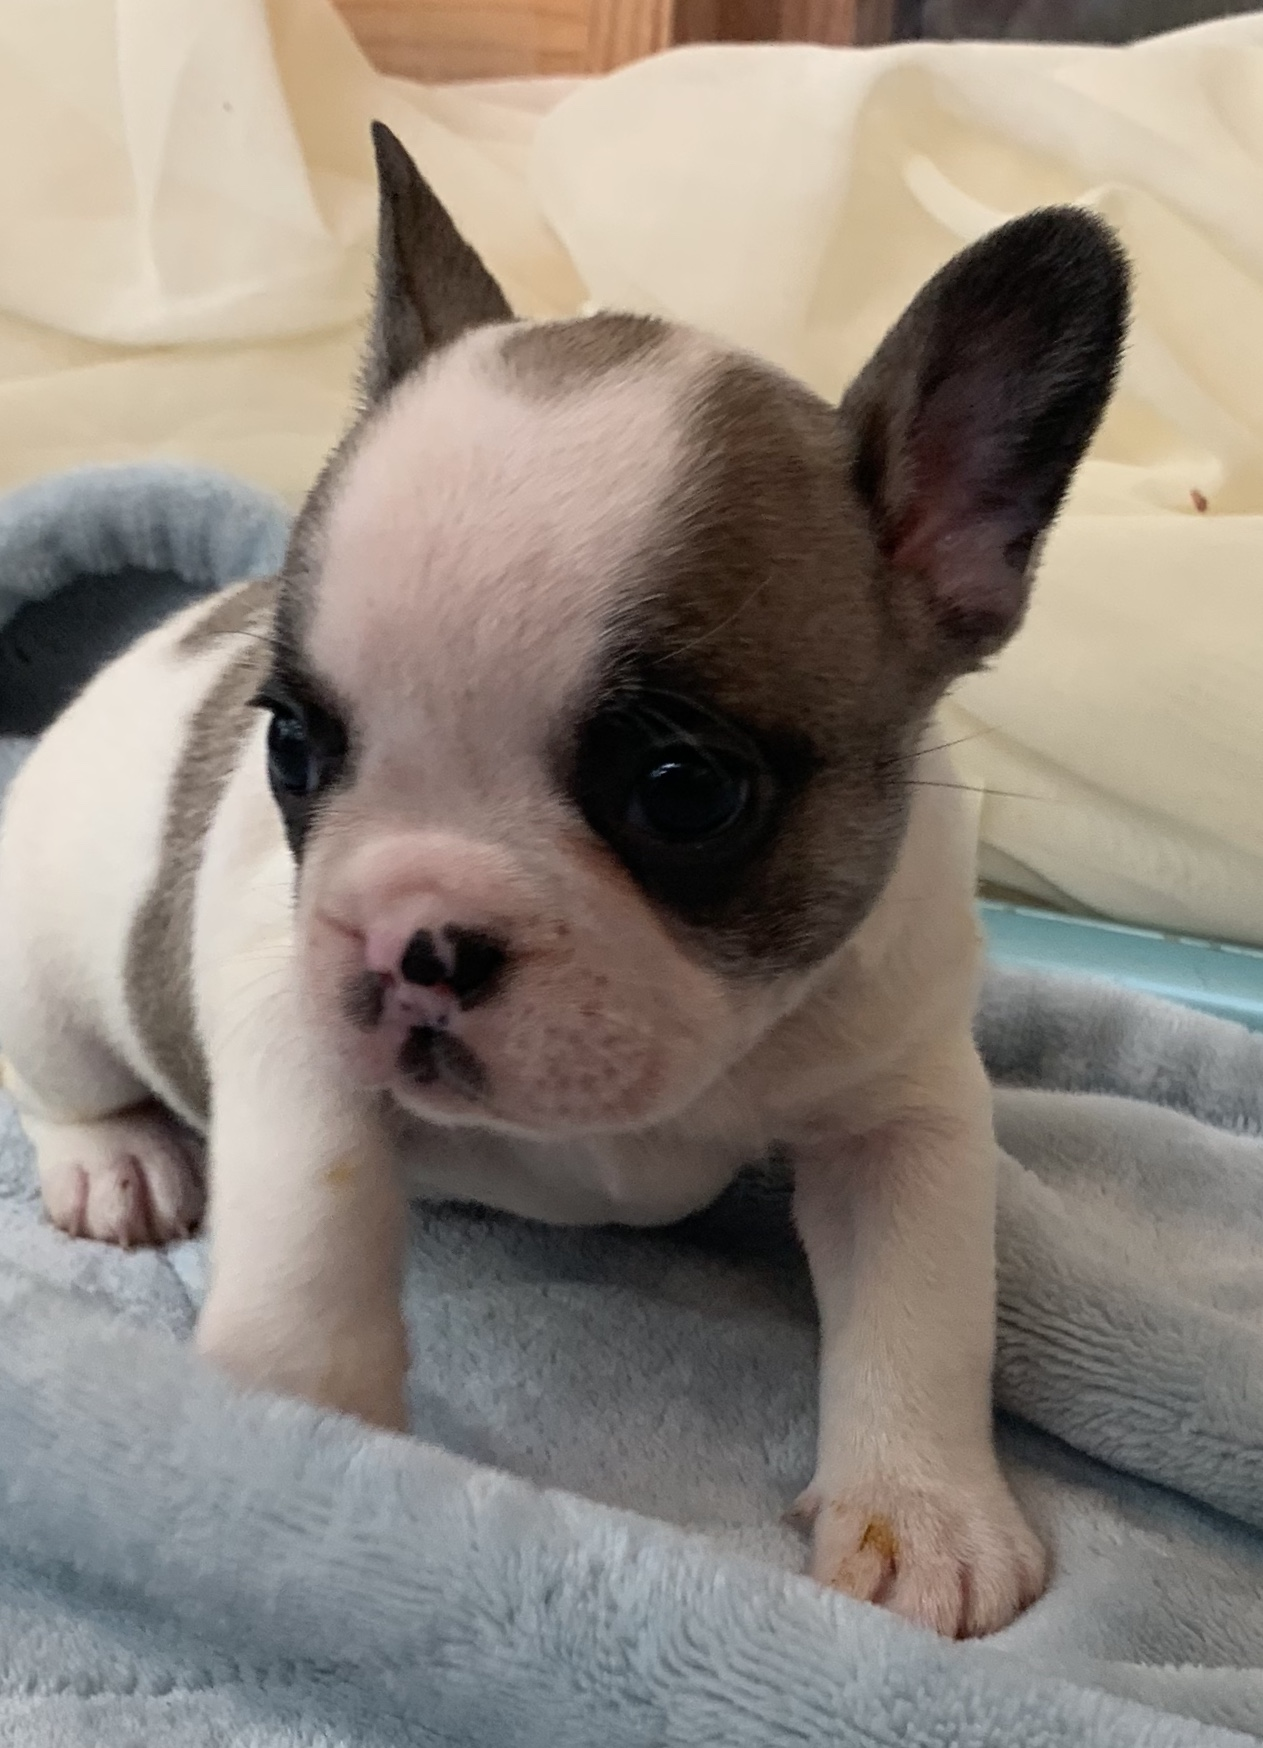 Pied French bulldog puppies in Colorado and Missouri. Within driving distance to Memphis, Louisiana, Illinois, Arkansas, New Mexico, and Texas. Can ship to New York, Alabama, Georgia. This is Margarita's litter. This is Dixon.